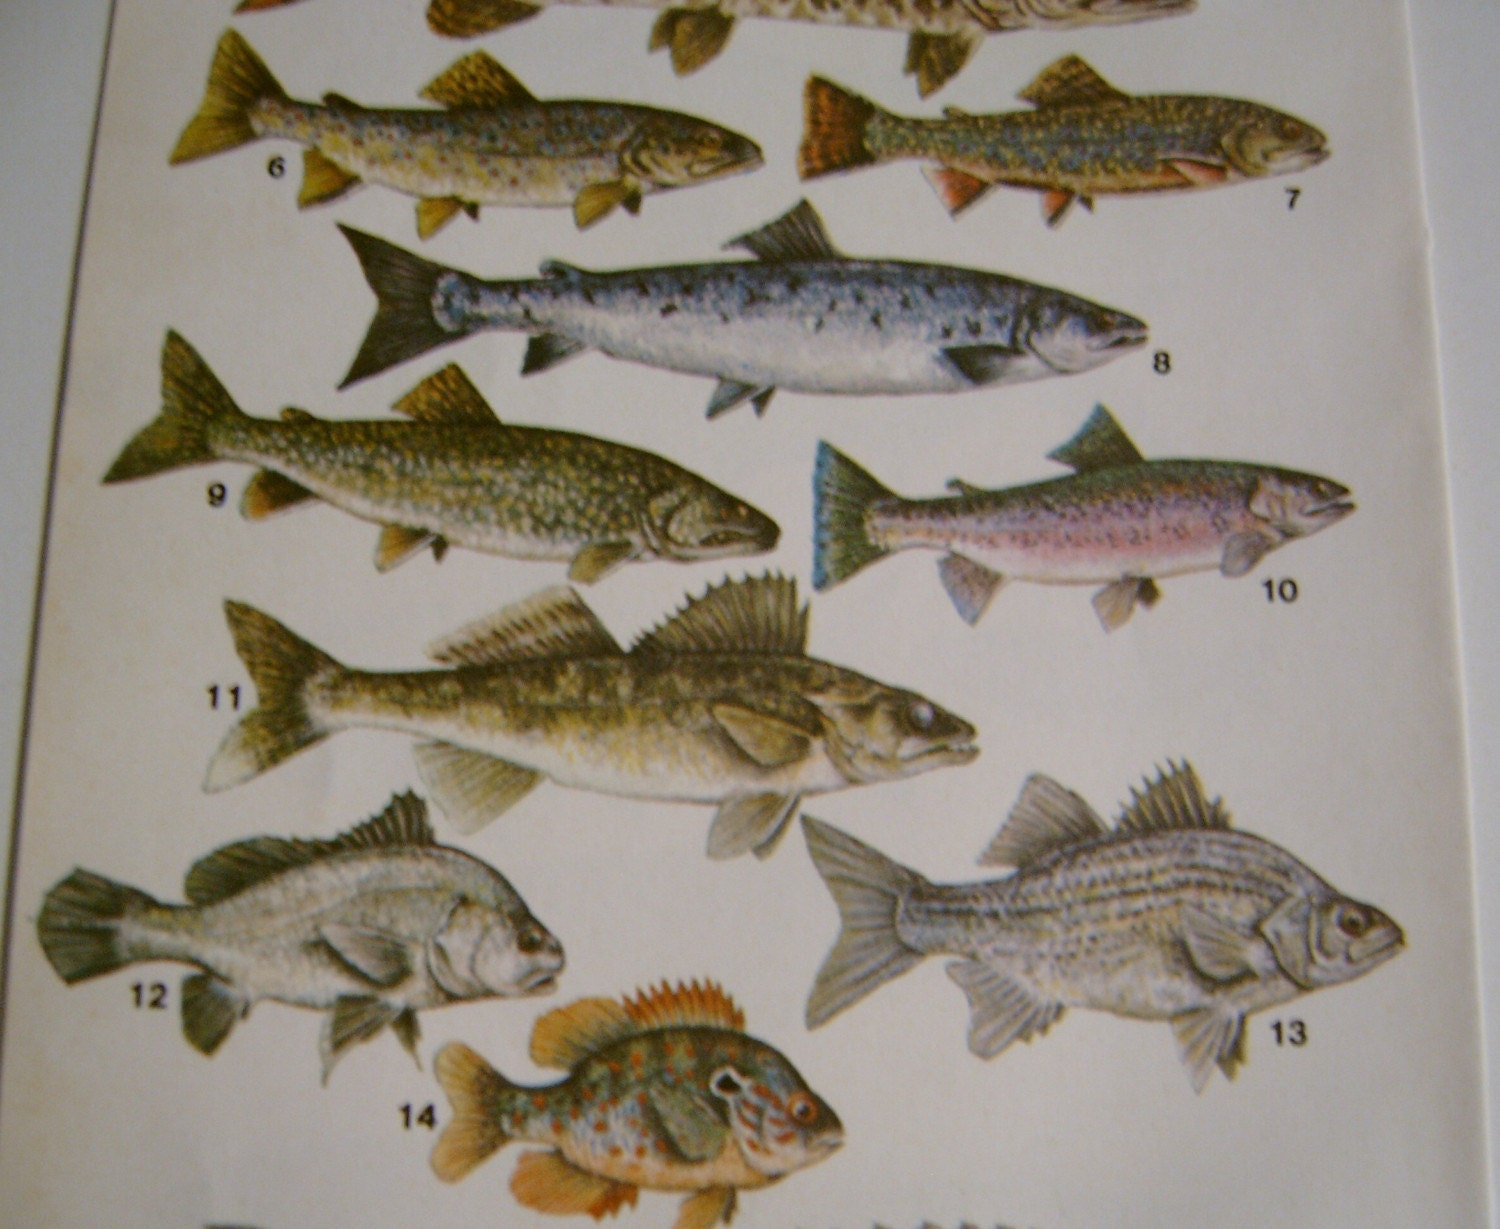 Florida saltwater fish identification chart for Florida saltwater fishing regulations quick chart